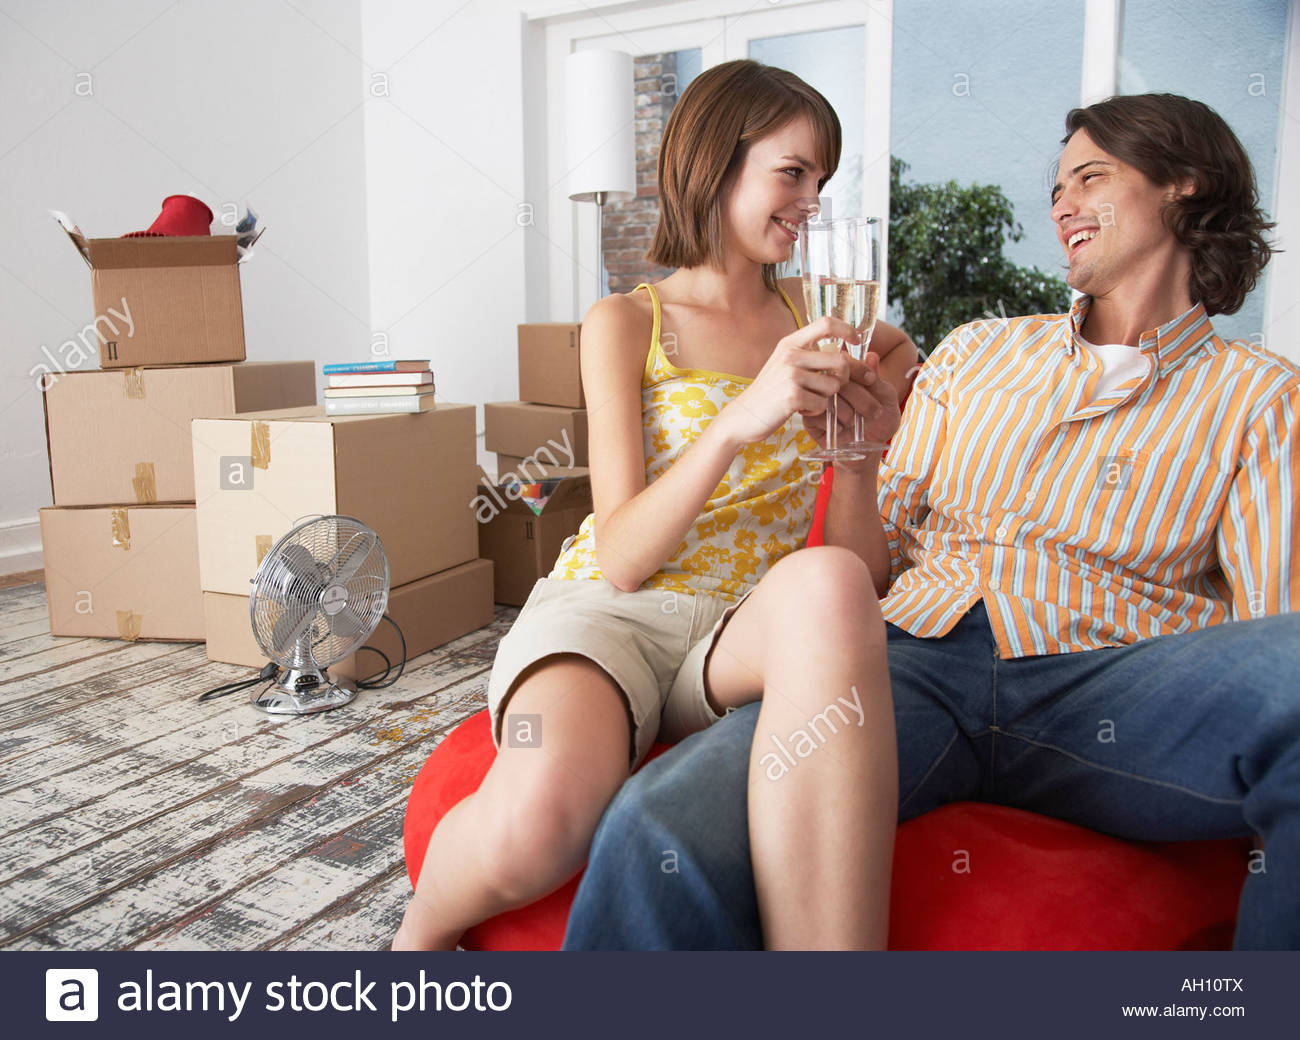 Couple with champagne in house with red chair celebrating - Stock Image